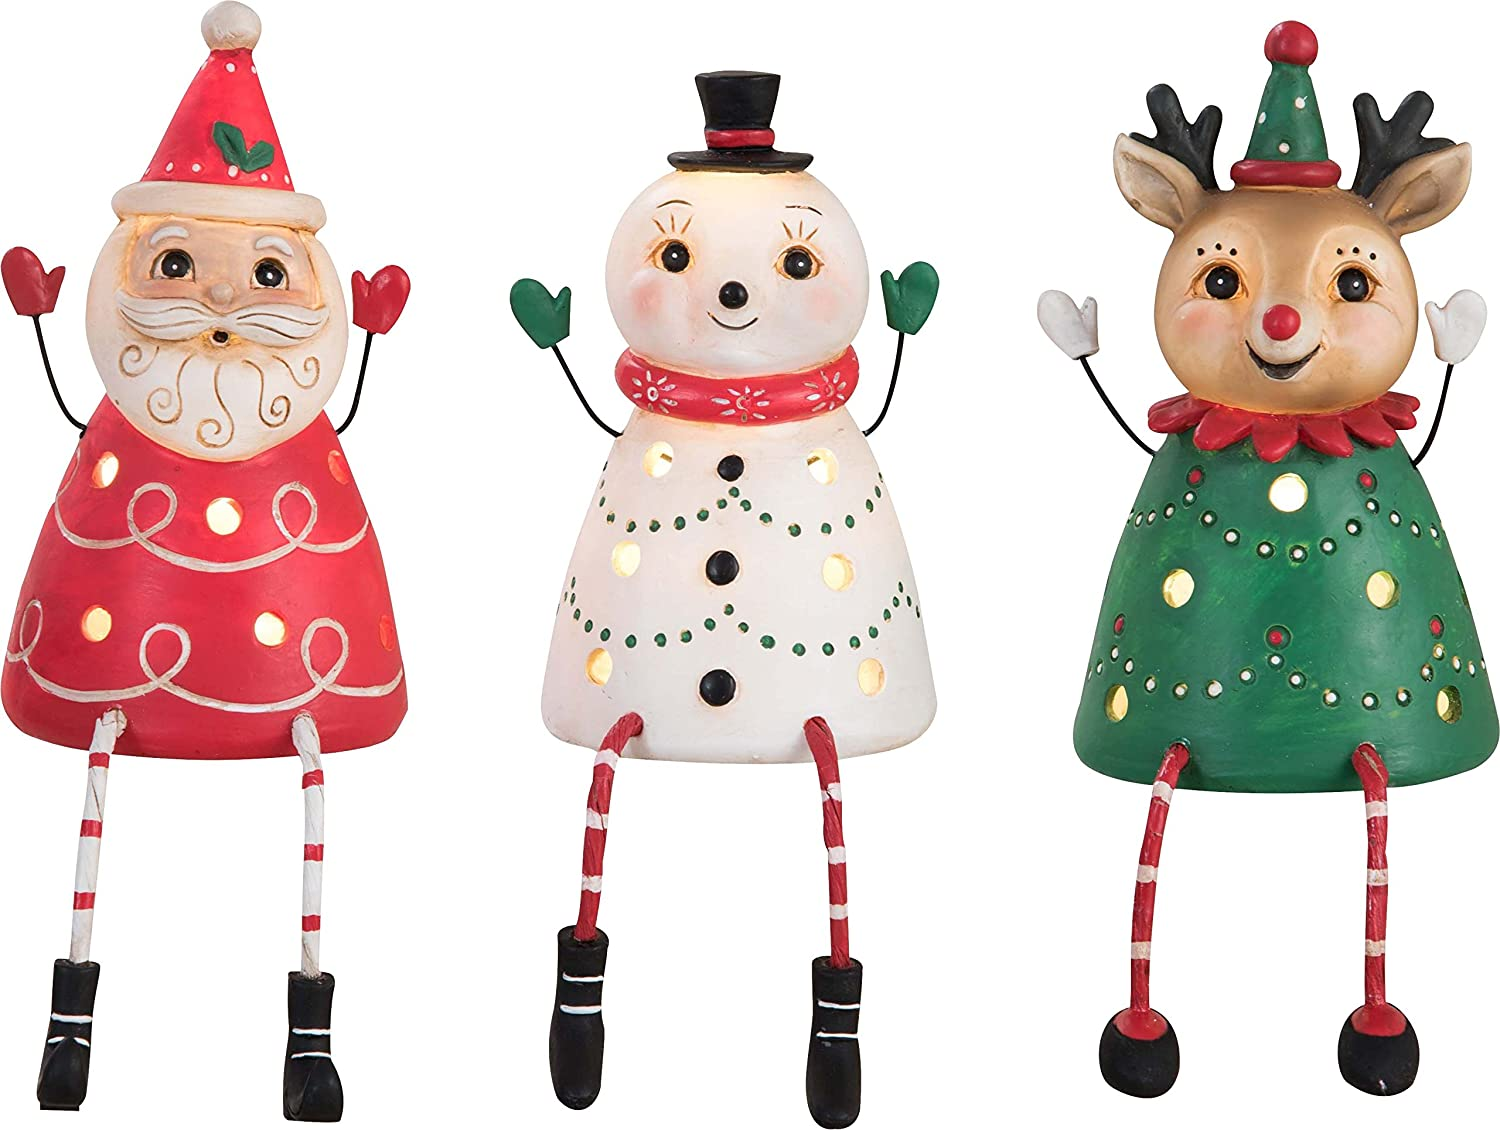 Transpac Christmas Santa Snowman Reindeer Shelf Sitters Johanna Parker Light Up Figurines